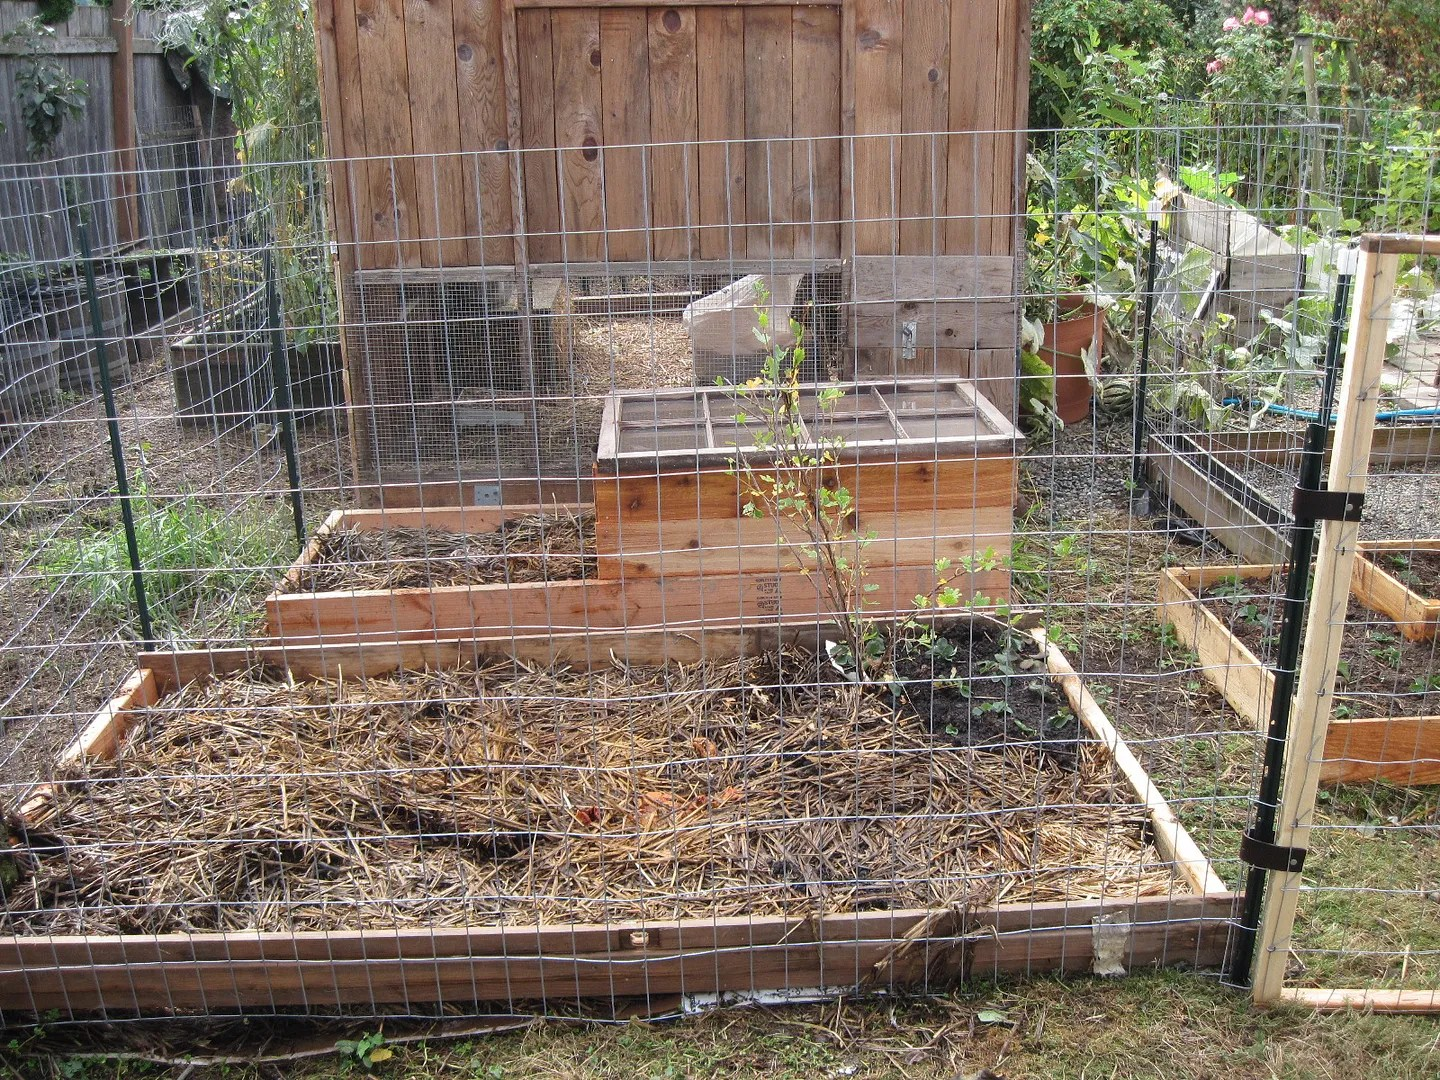 quail coop out of eden